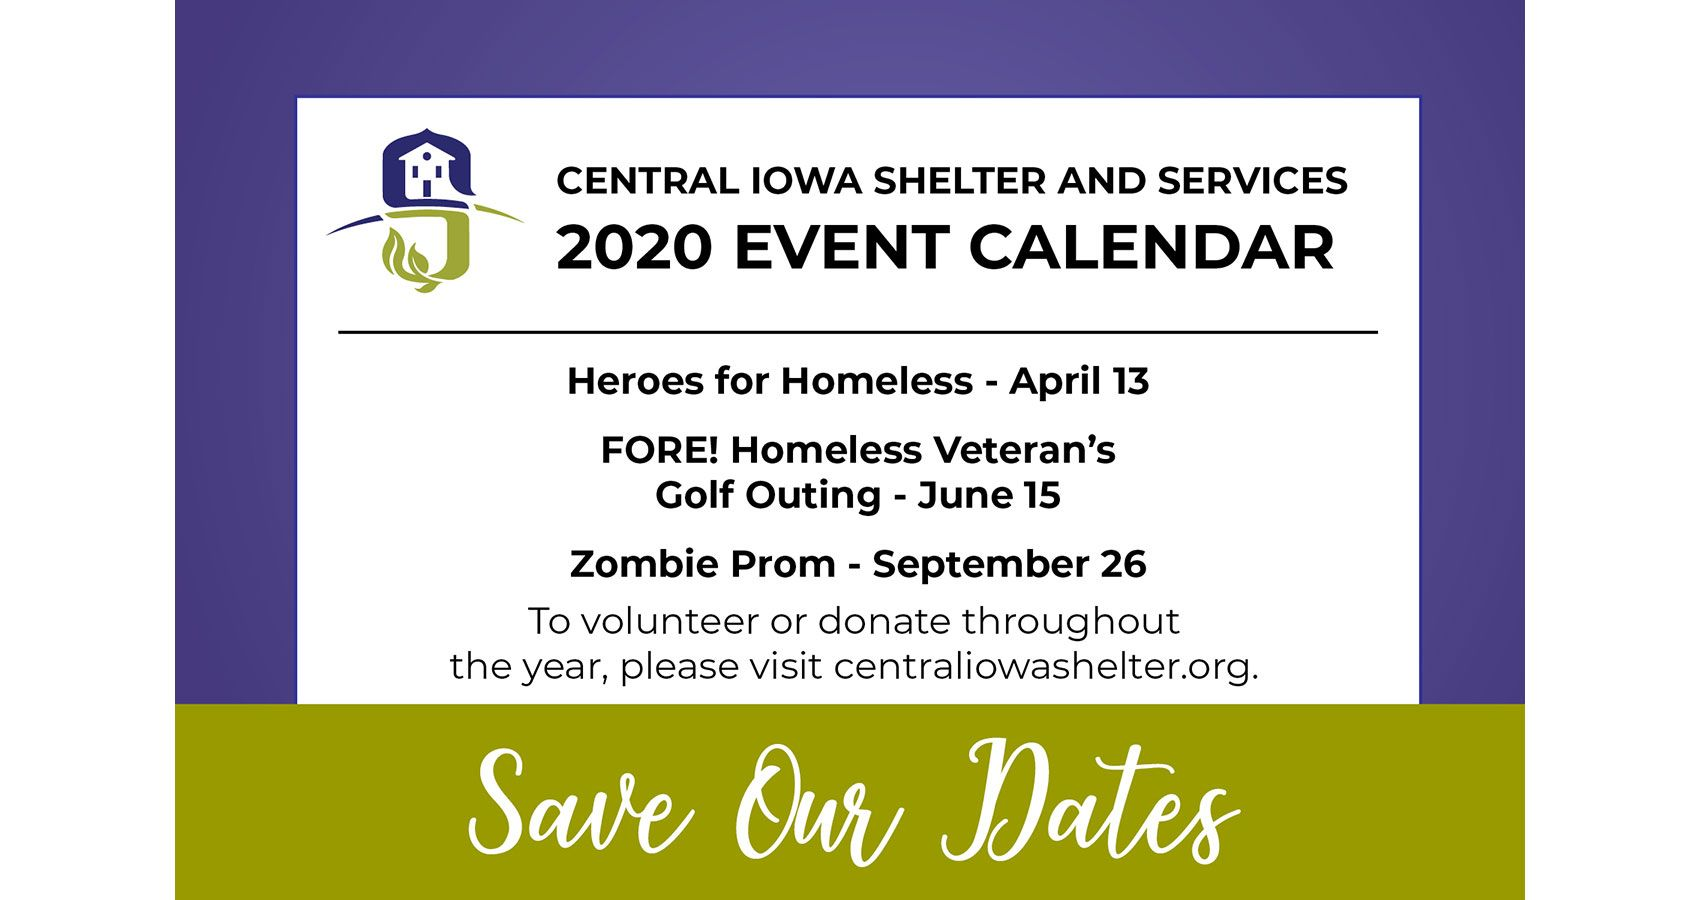 Save Our Dates!